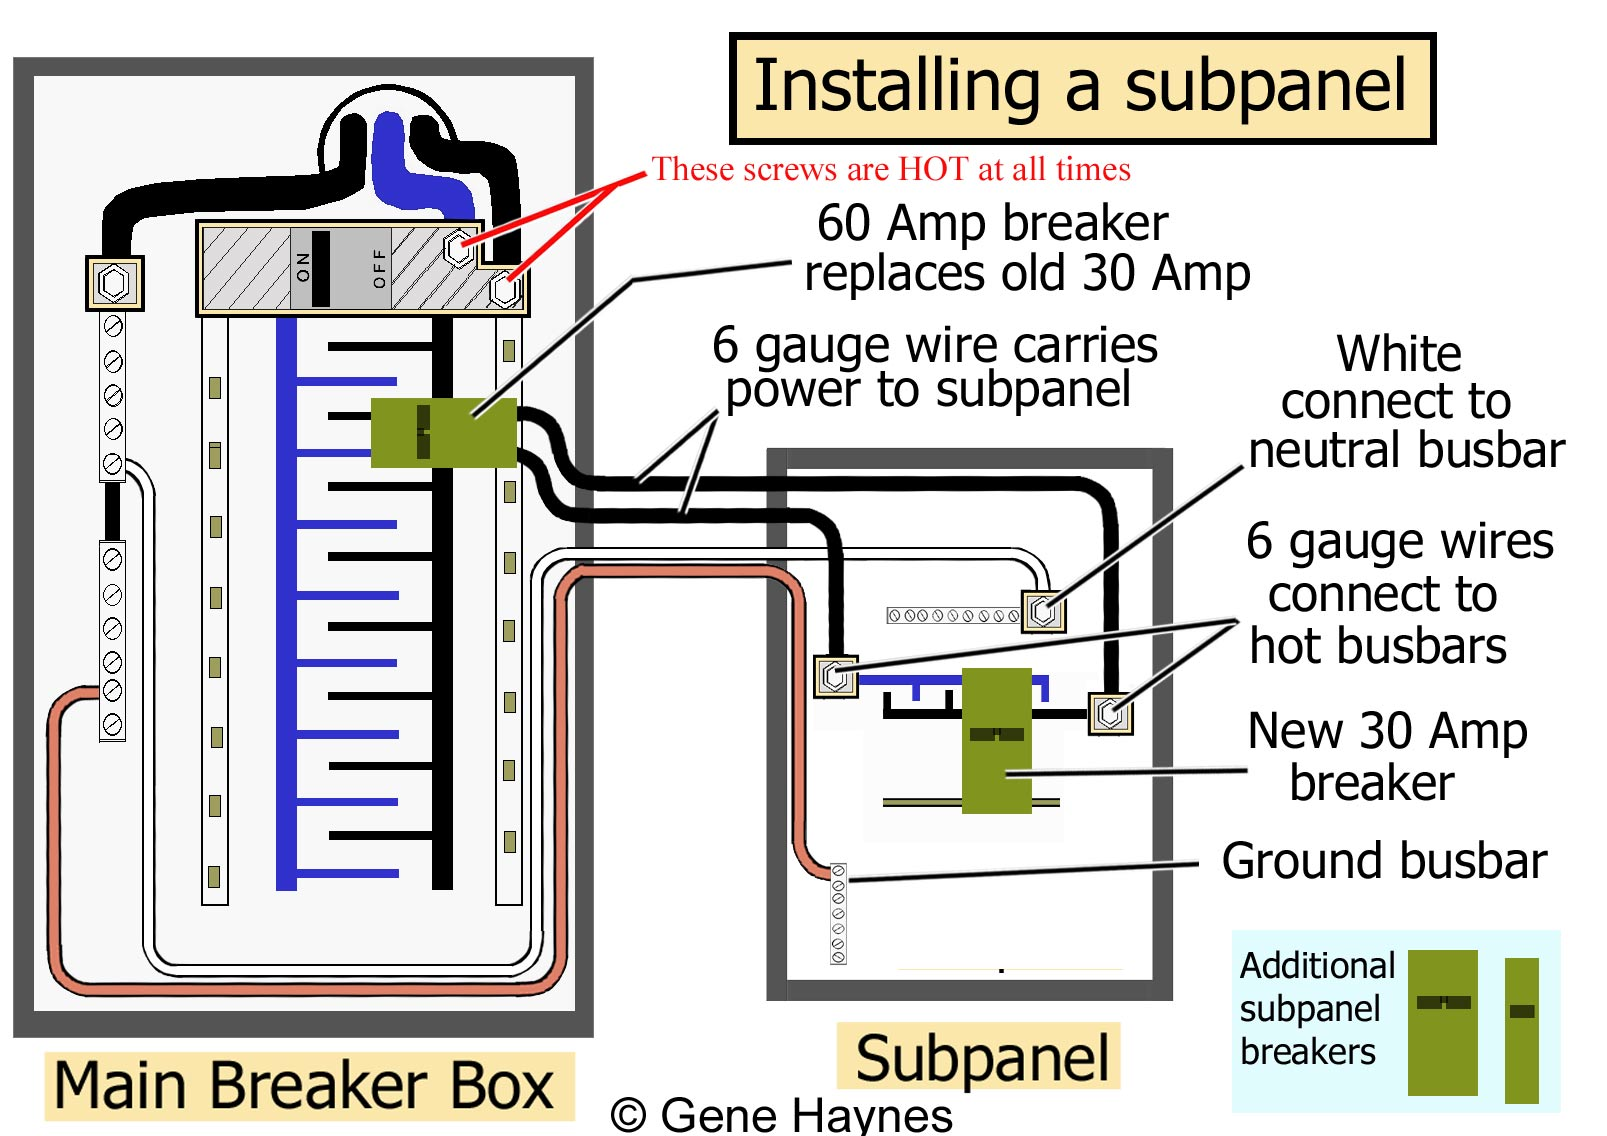 How to install a subpanel how to install main lug 1 60 150 amp breaker replaces any 240 breaker in main box near top of box greentooth Image collections